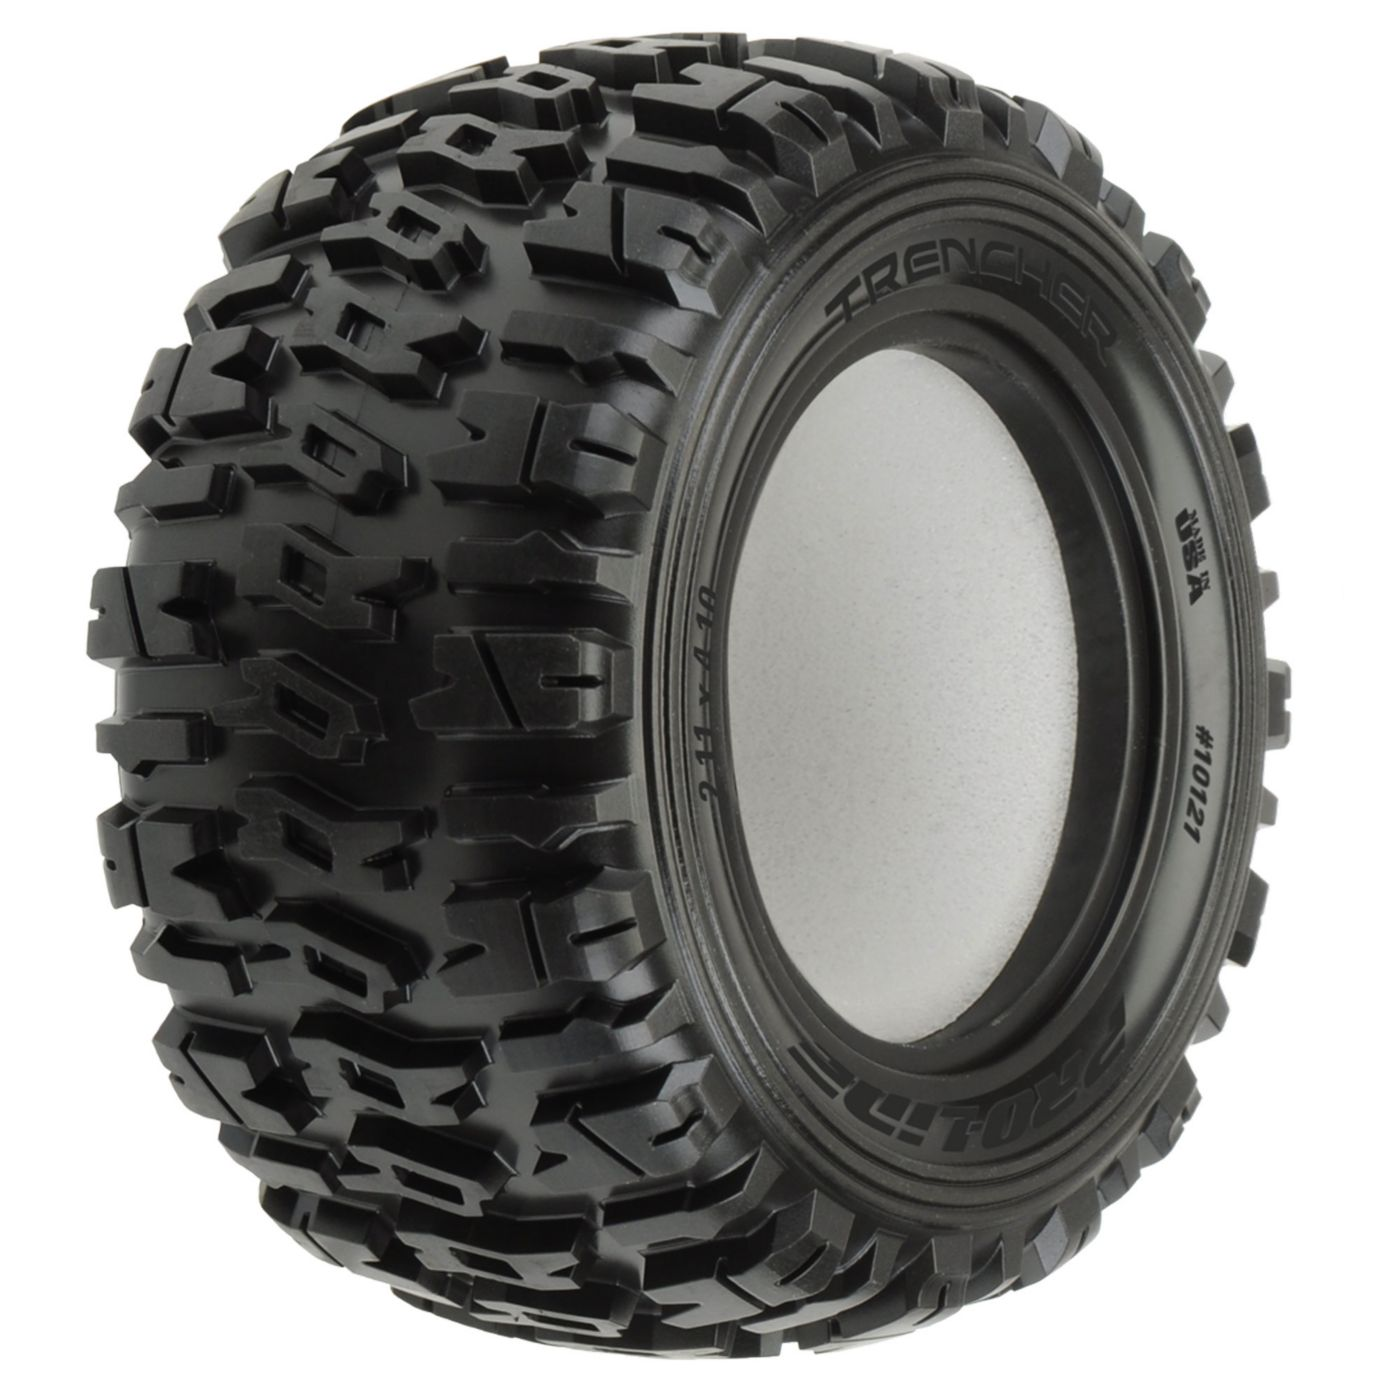 Trencher T 2.2 All Terrain Truck Tires (2)